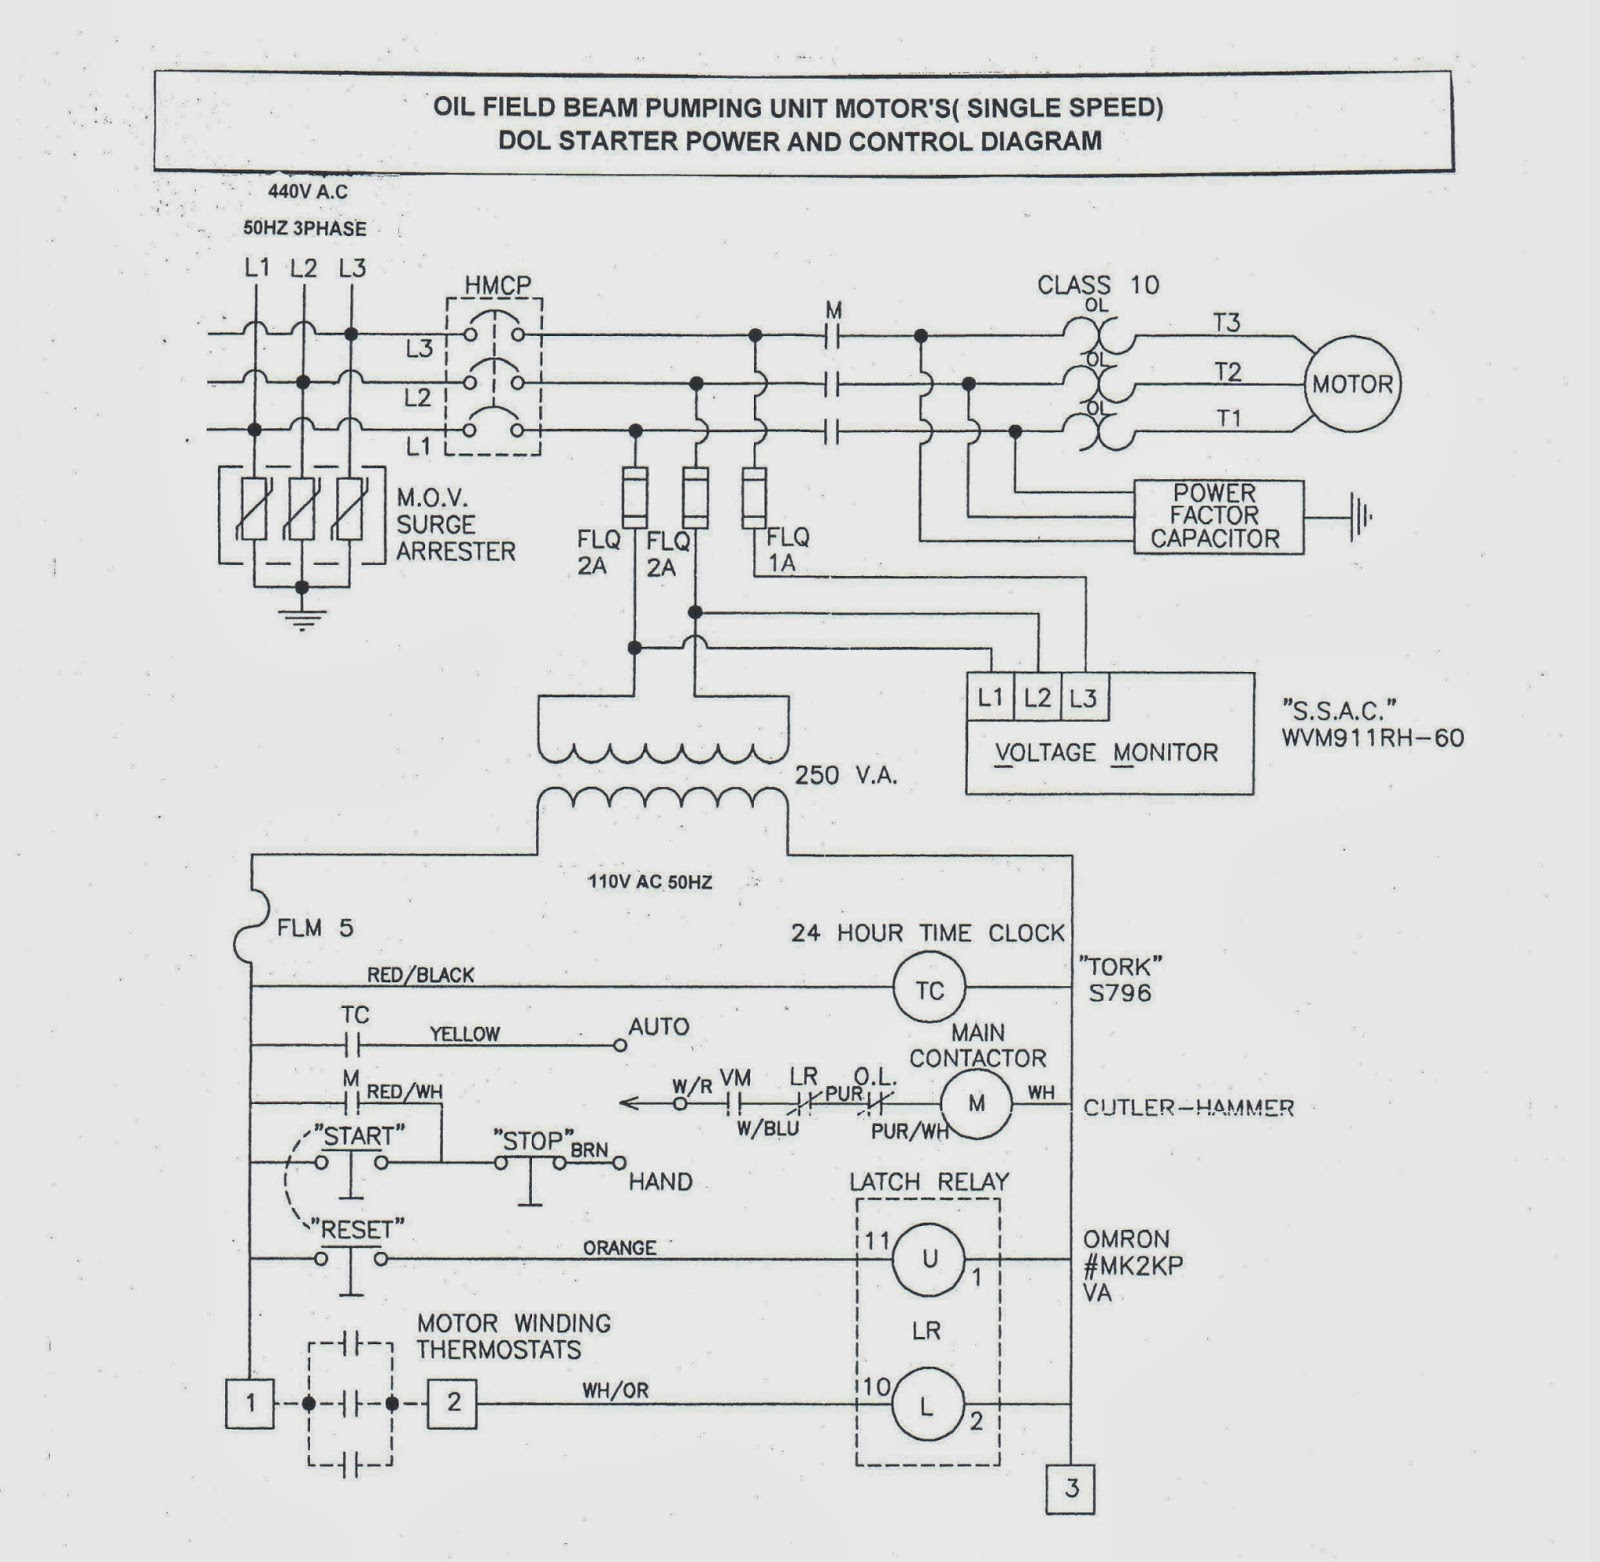 OIL FIELD BEAM PUMPING UNIT MOTOR DOL STARTER POWER AND CONTROL DIAGRAM